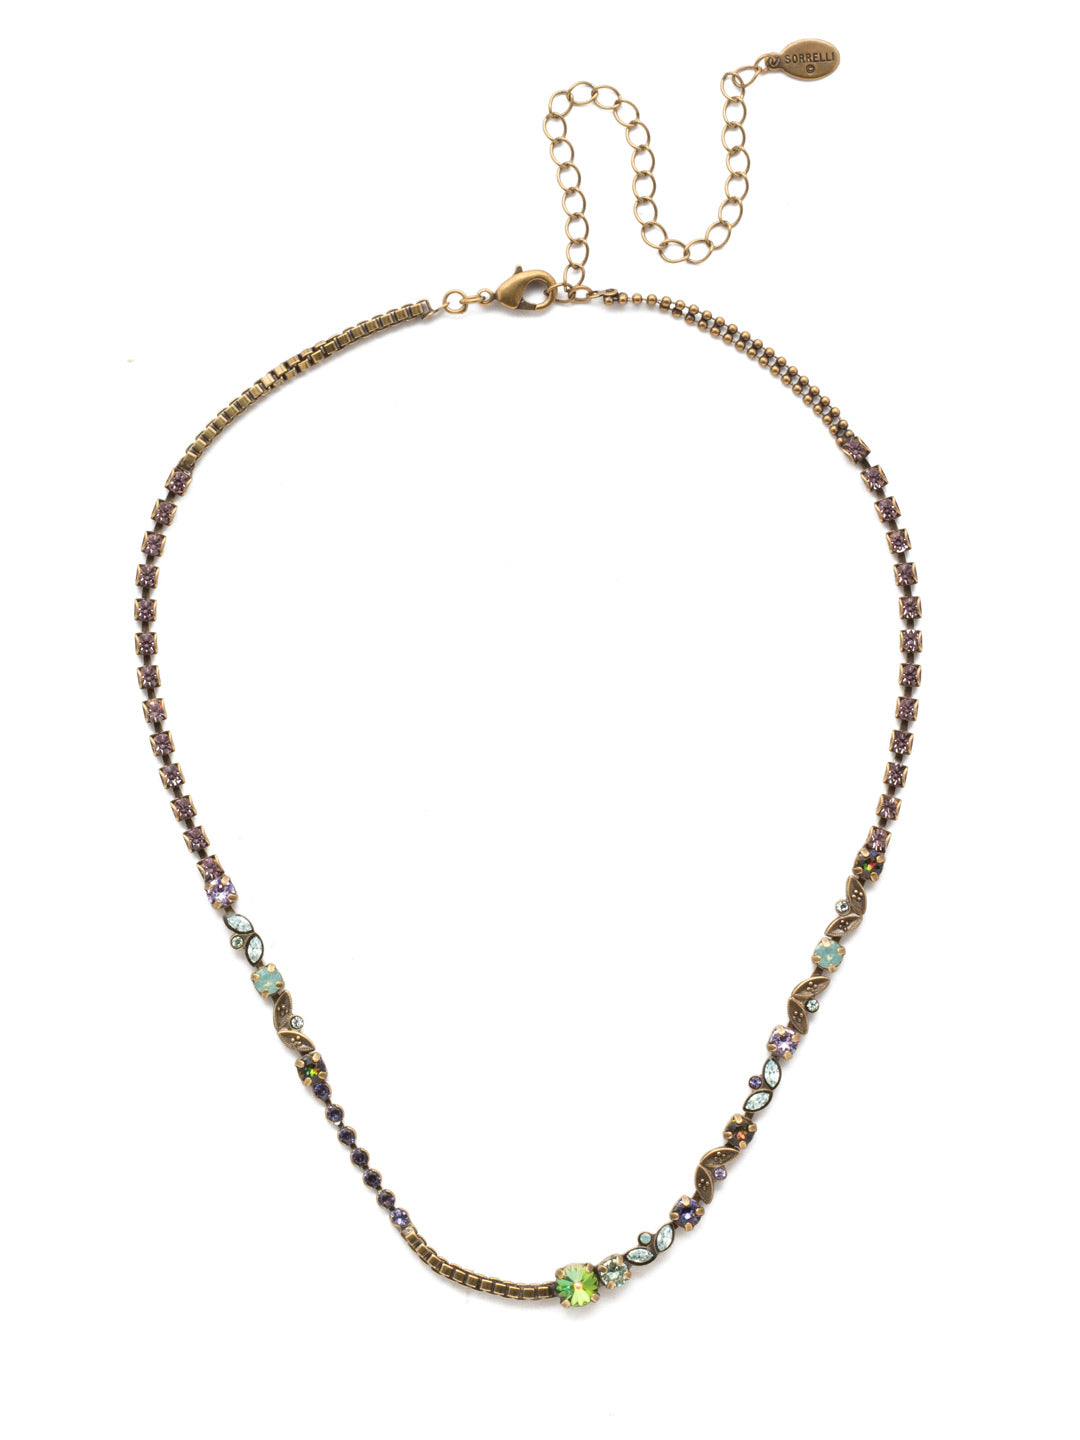 Juliette Tennis Necklace - NEN13AGIRB